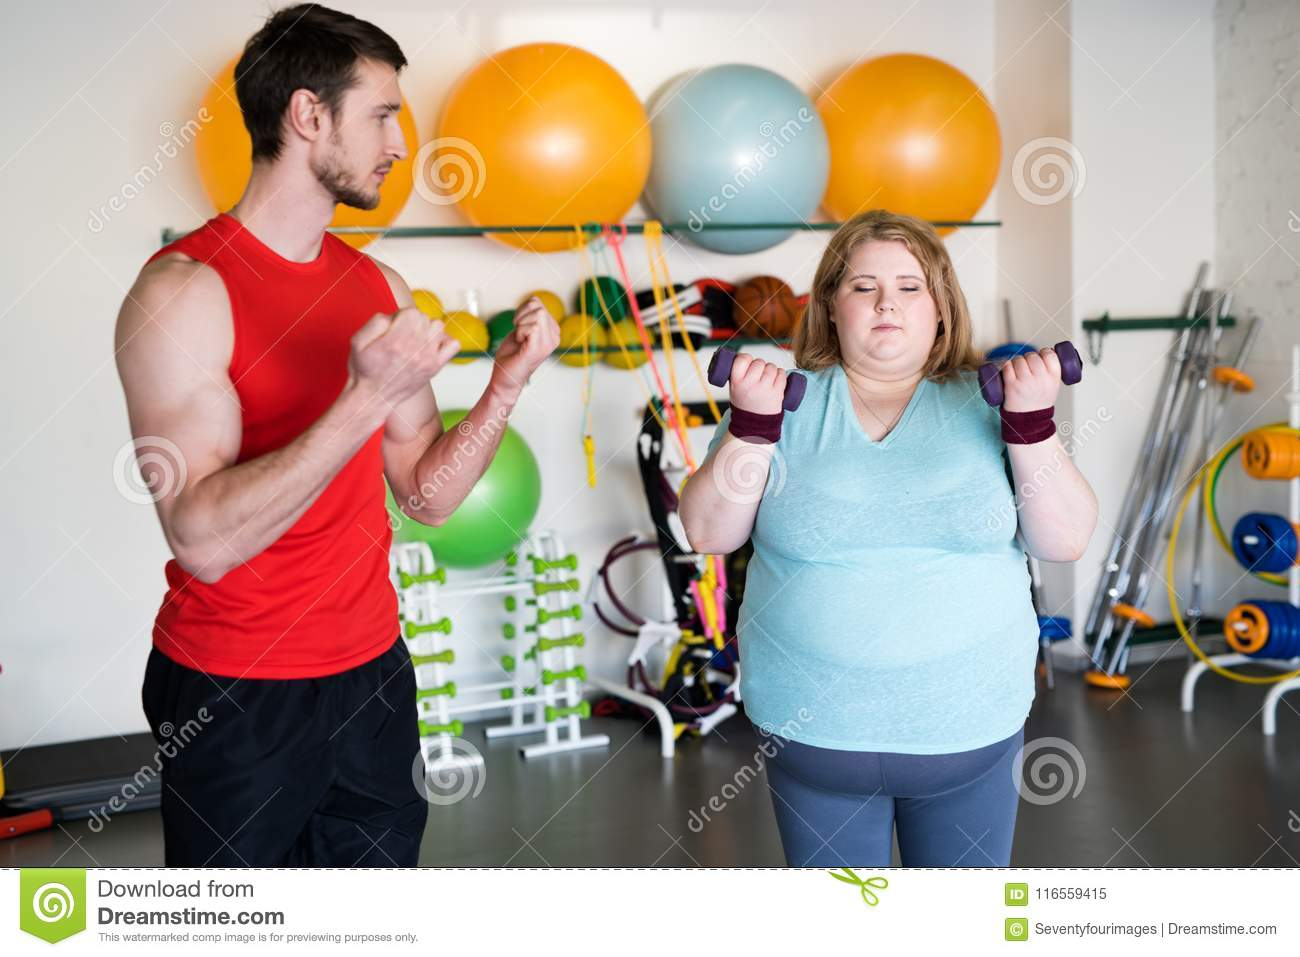 Weight loss Workout in Gym stock image  Image of exercising